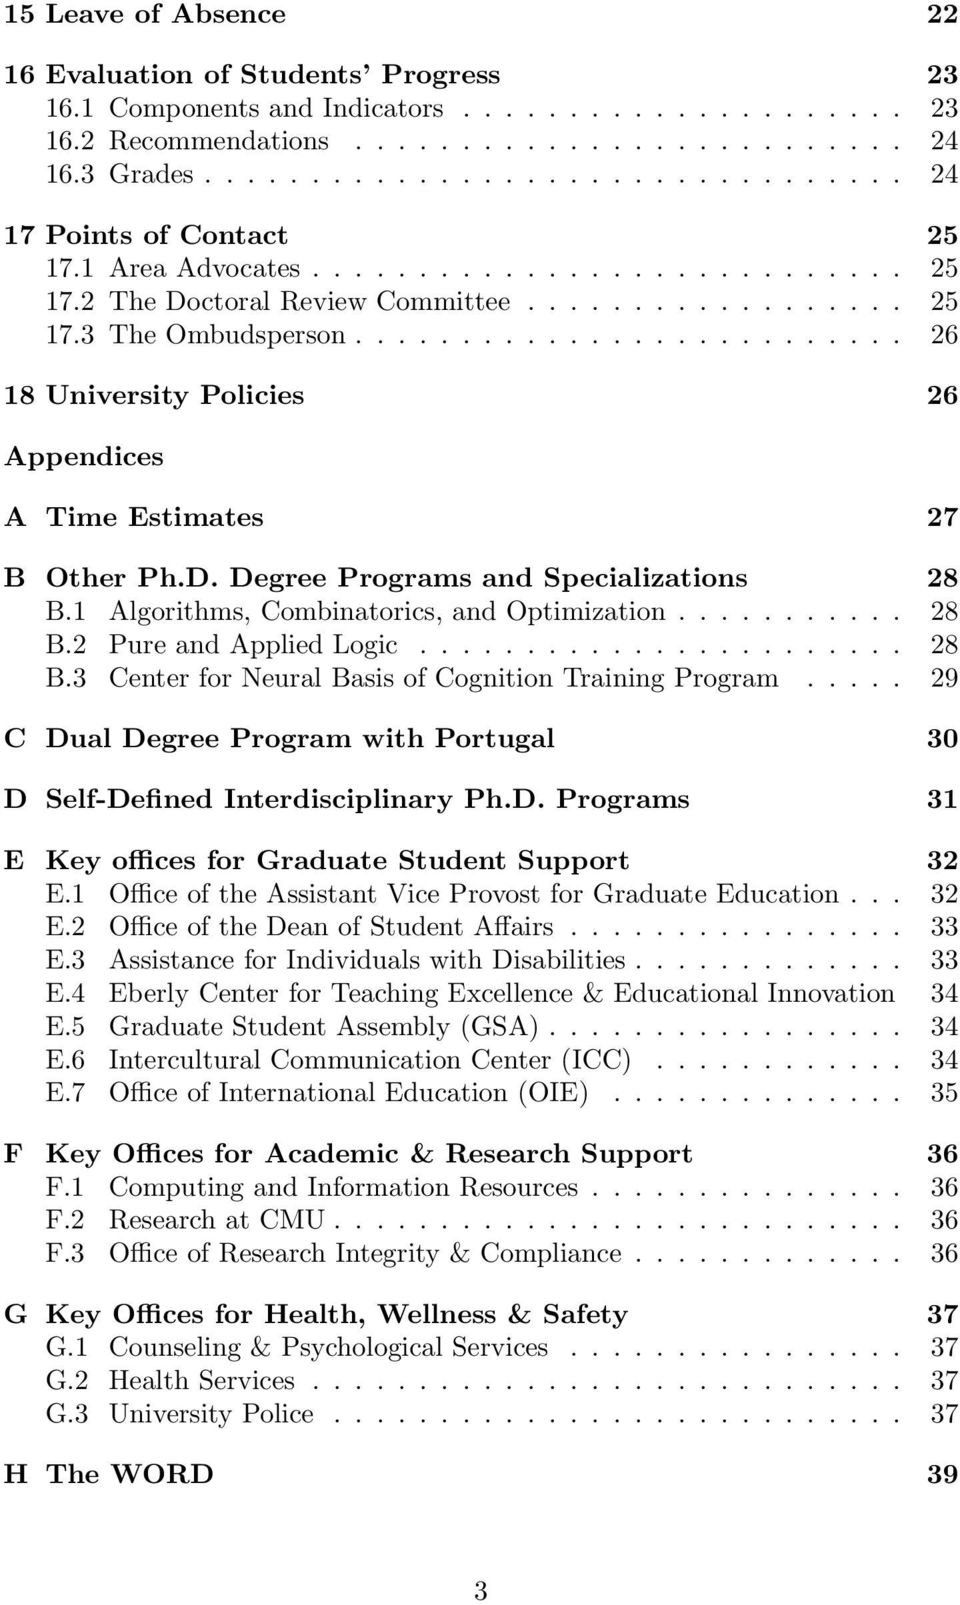 ......................... 26 18 University Policies 26 Appendices A Time Estimates 27 B Other Ph.D. Degree Programs and Specializations 28 B.1 Algorithms, Combinatorics, and Optimization........... 28 B.2 Pure and Applied Logic.